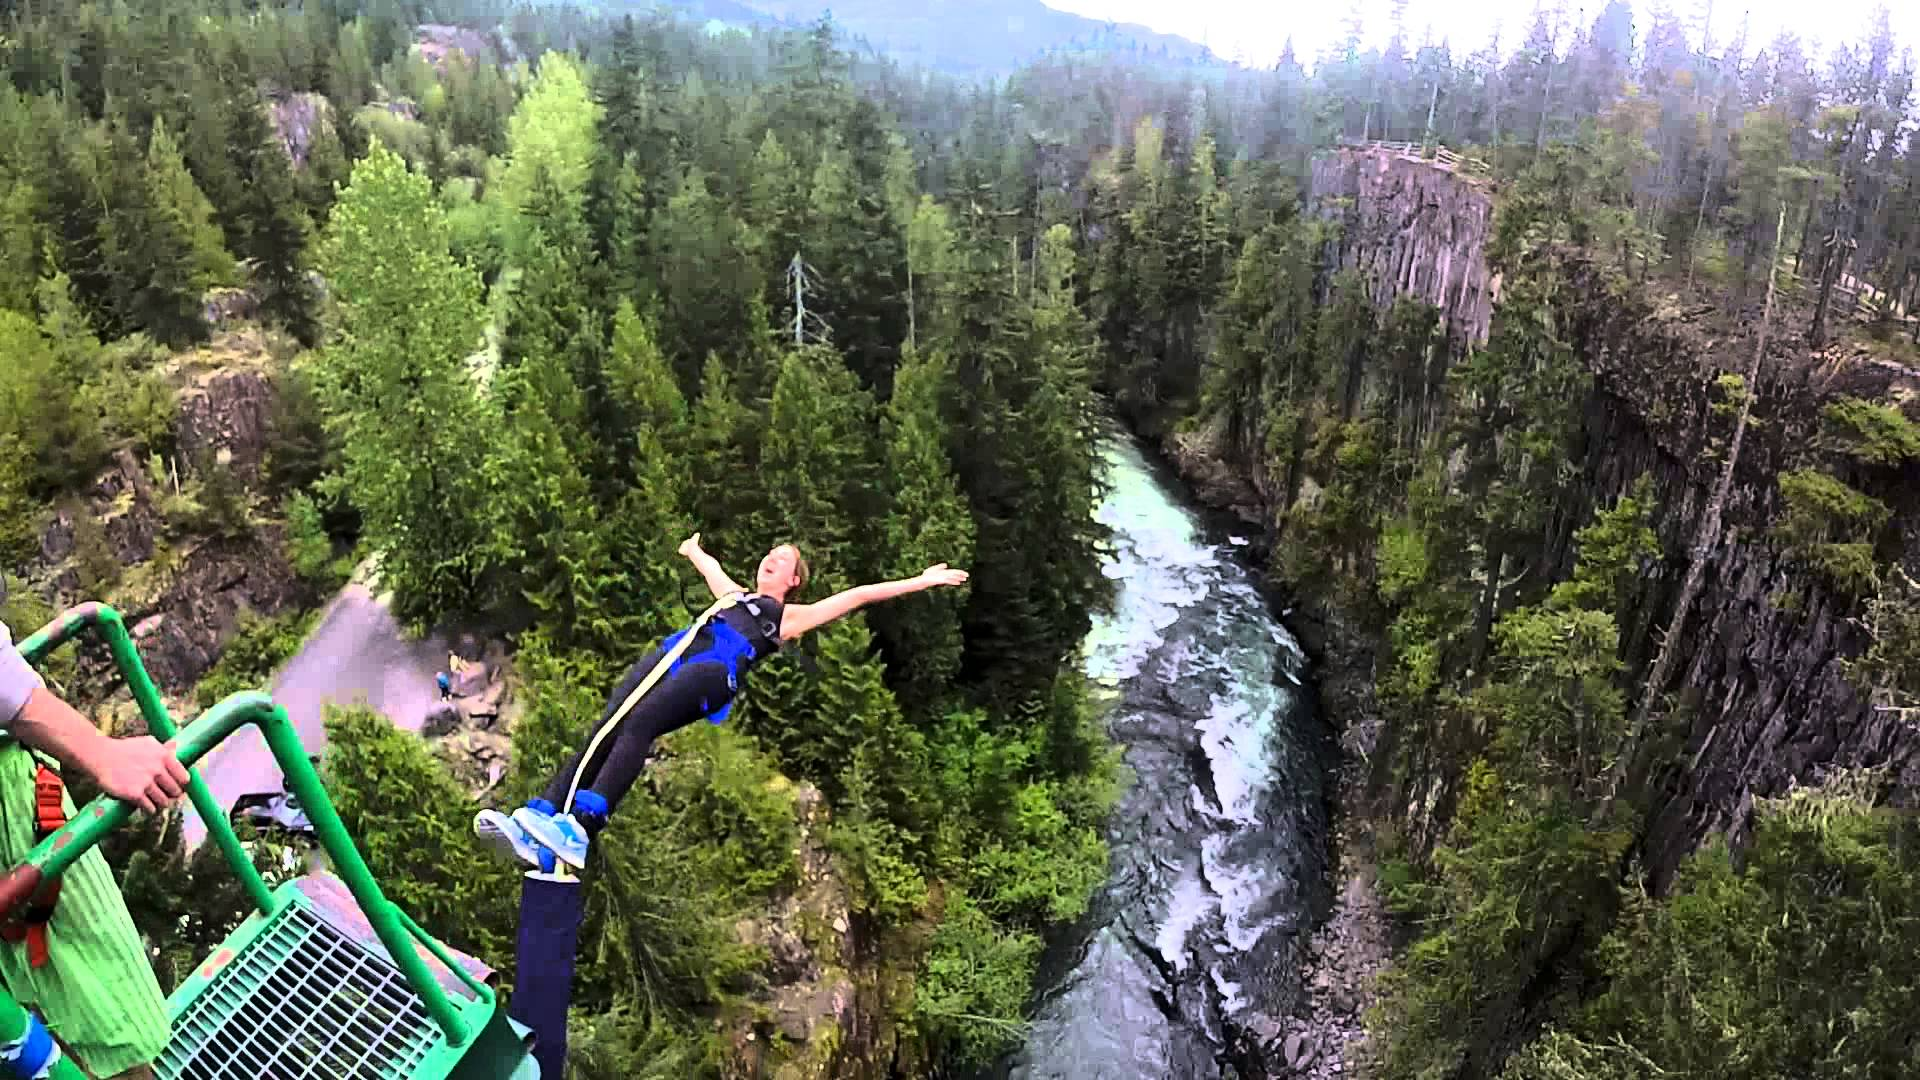 bungee jumping i experience i adventure i whistler, canada